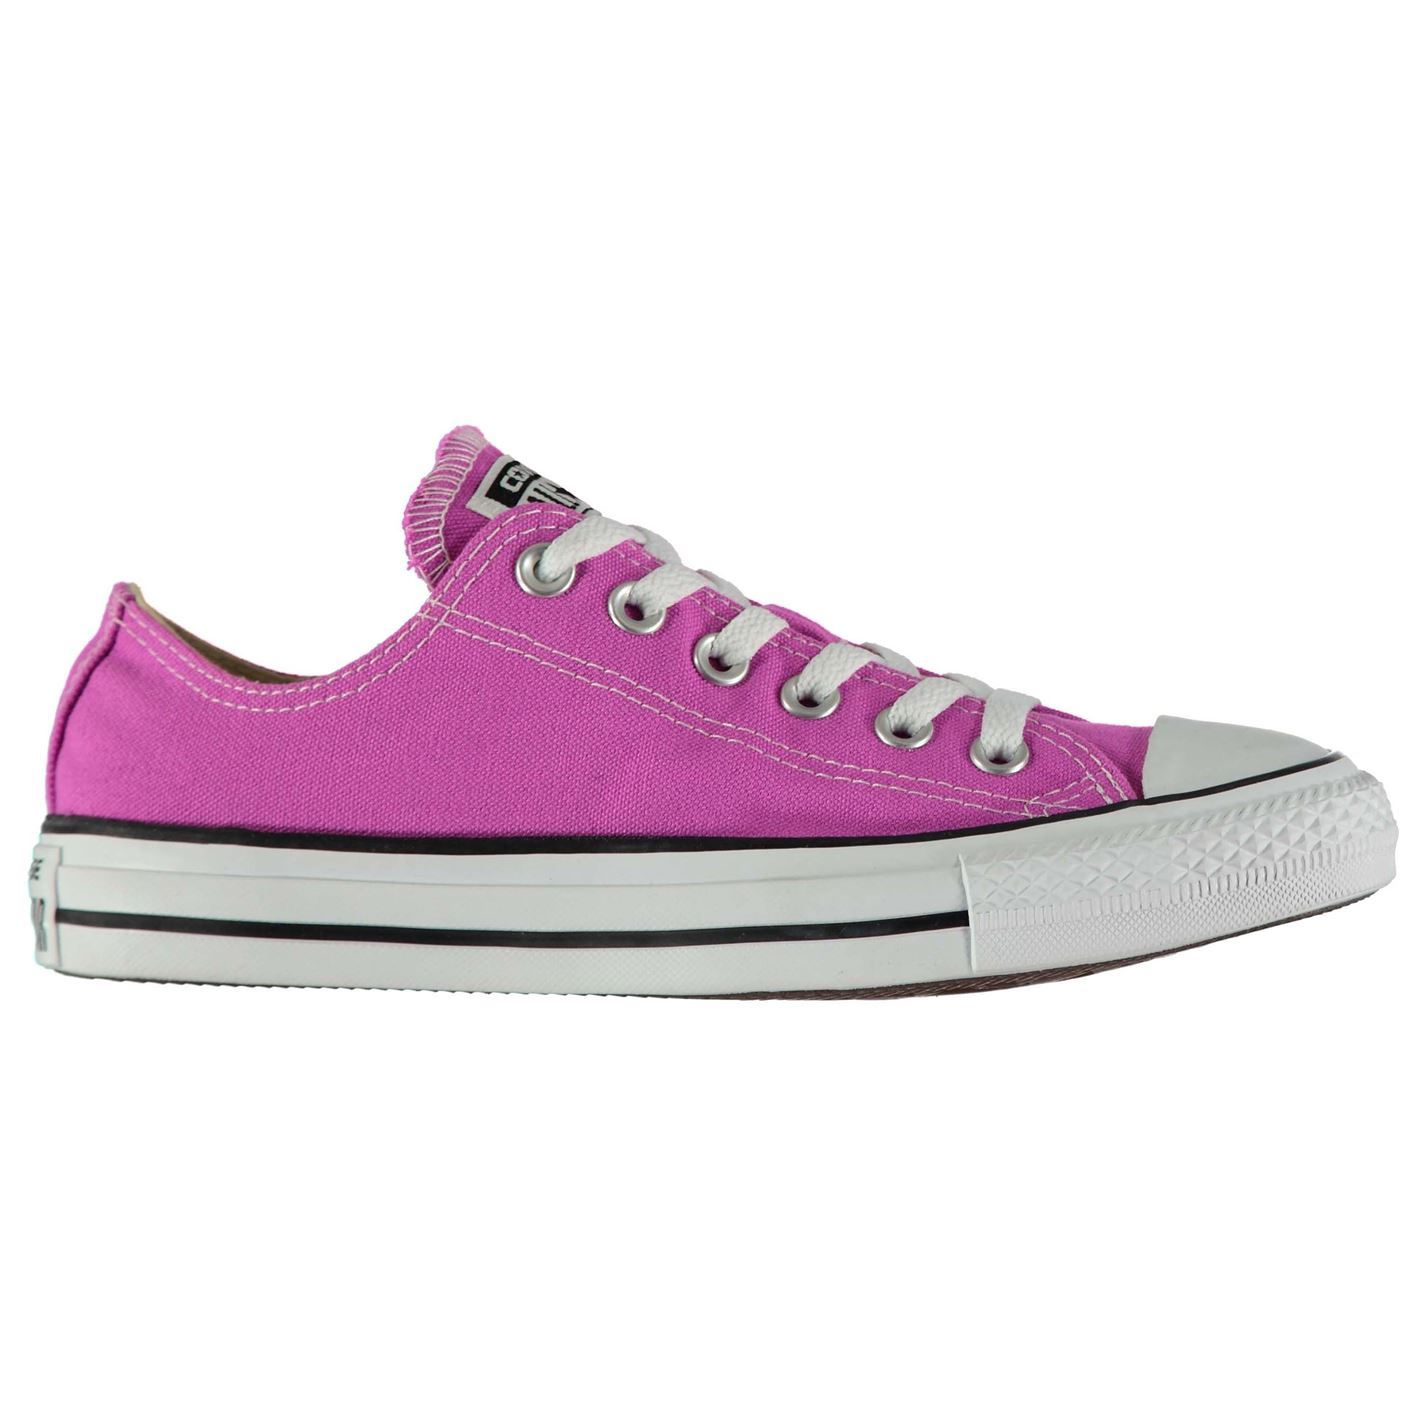 aac3234c3dc6 ... Converse All Star Seasonal Ox Trainers Womens Athleisure Sneakers Shoes  Footwear